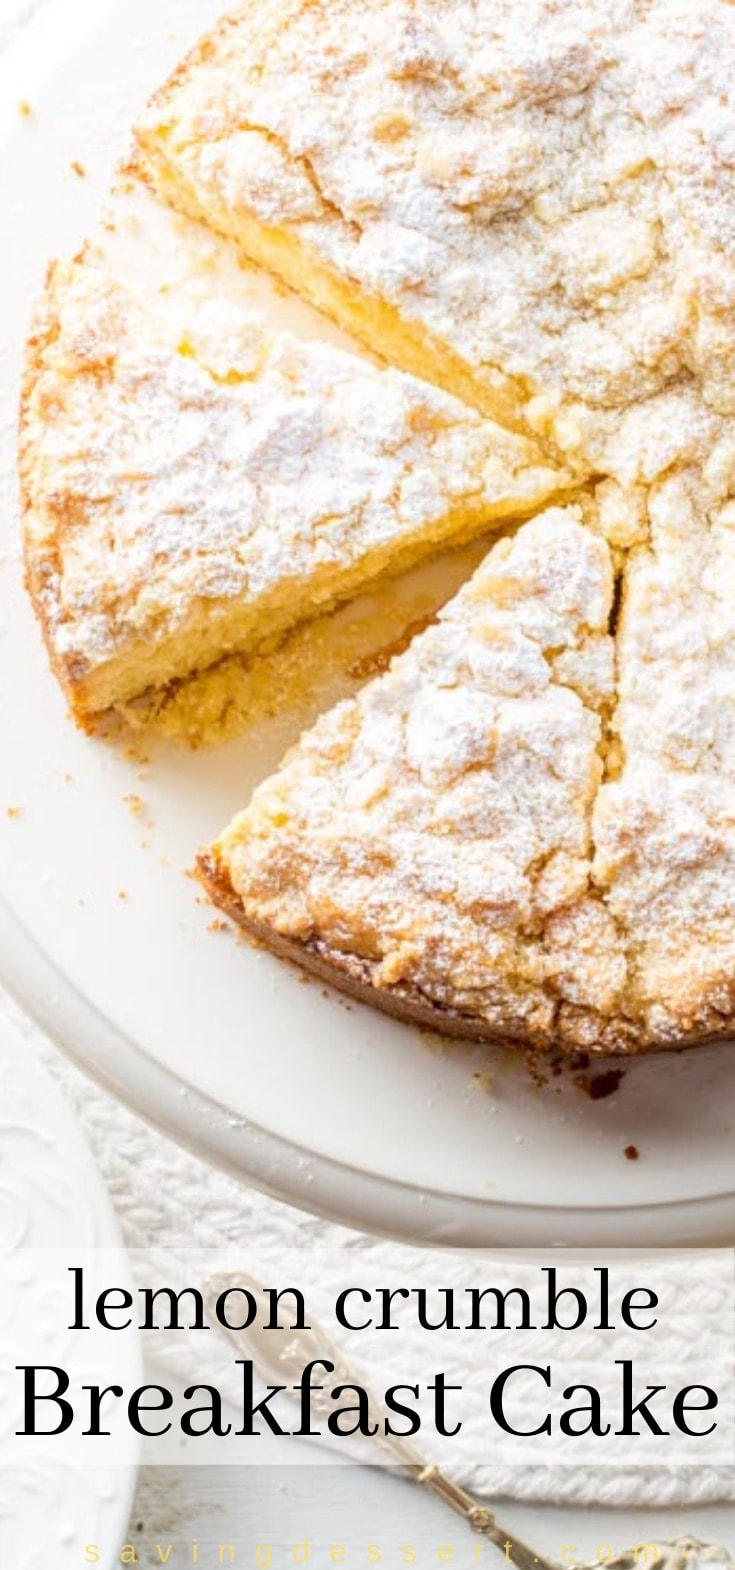 Lemon Crumble Breakfast Cake dusted with powdered sugar